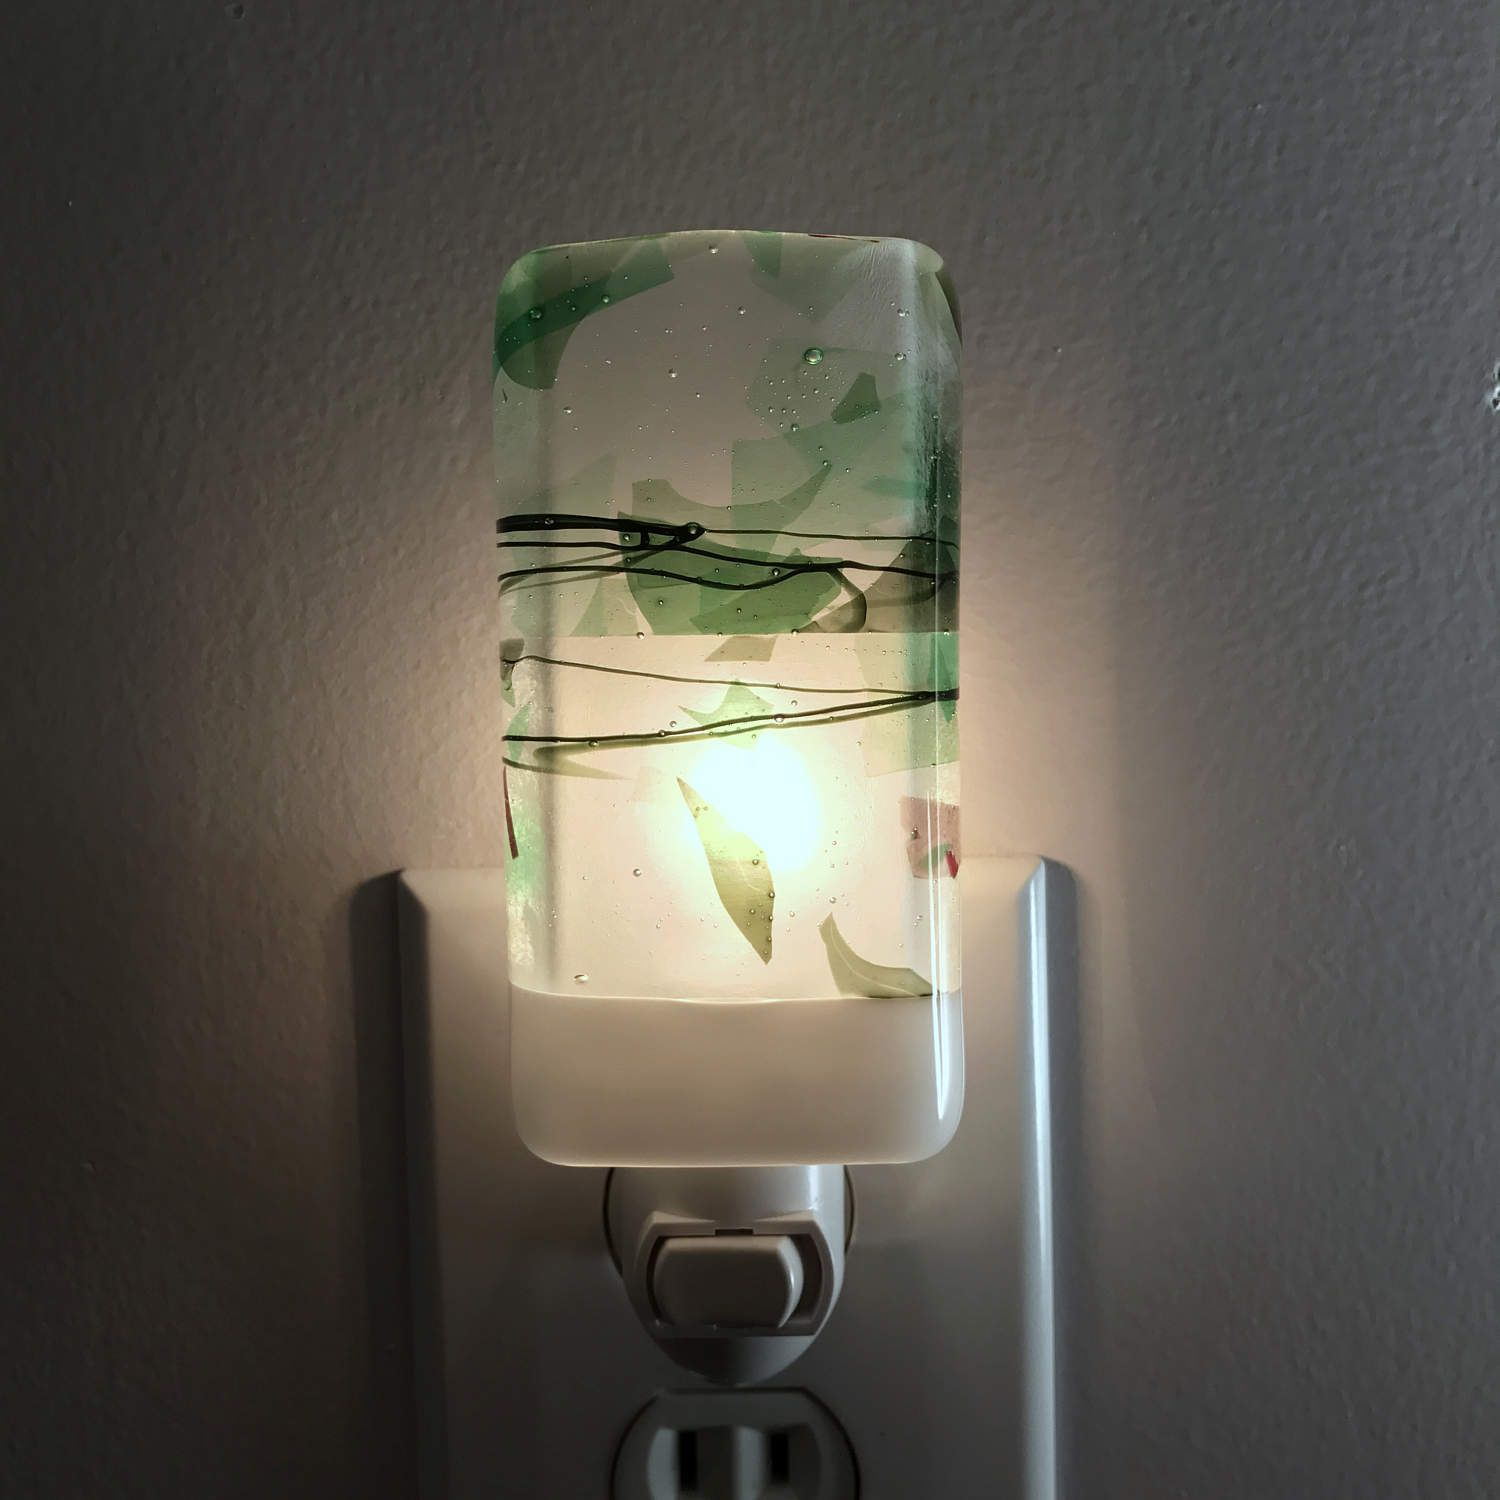 Bathroom Lights With Plugs glass night light - white and green confetti kitchen or bathroom